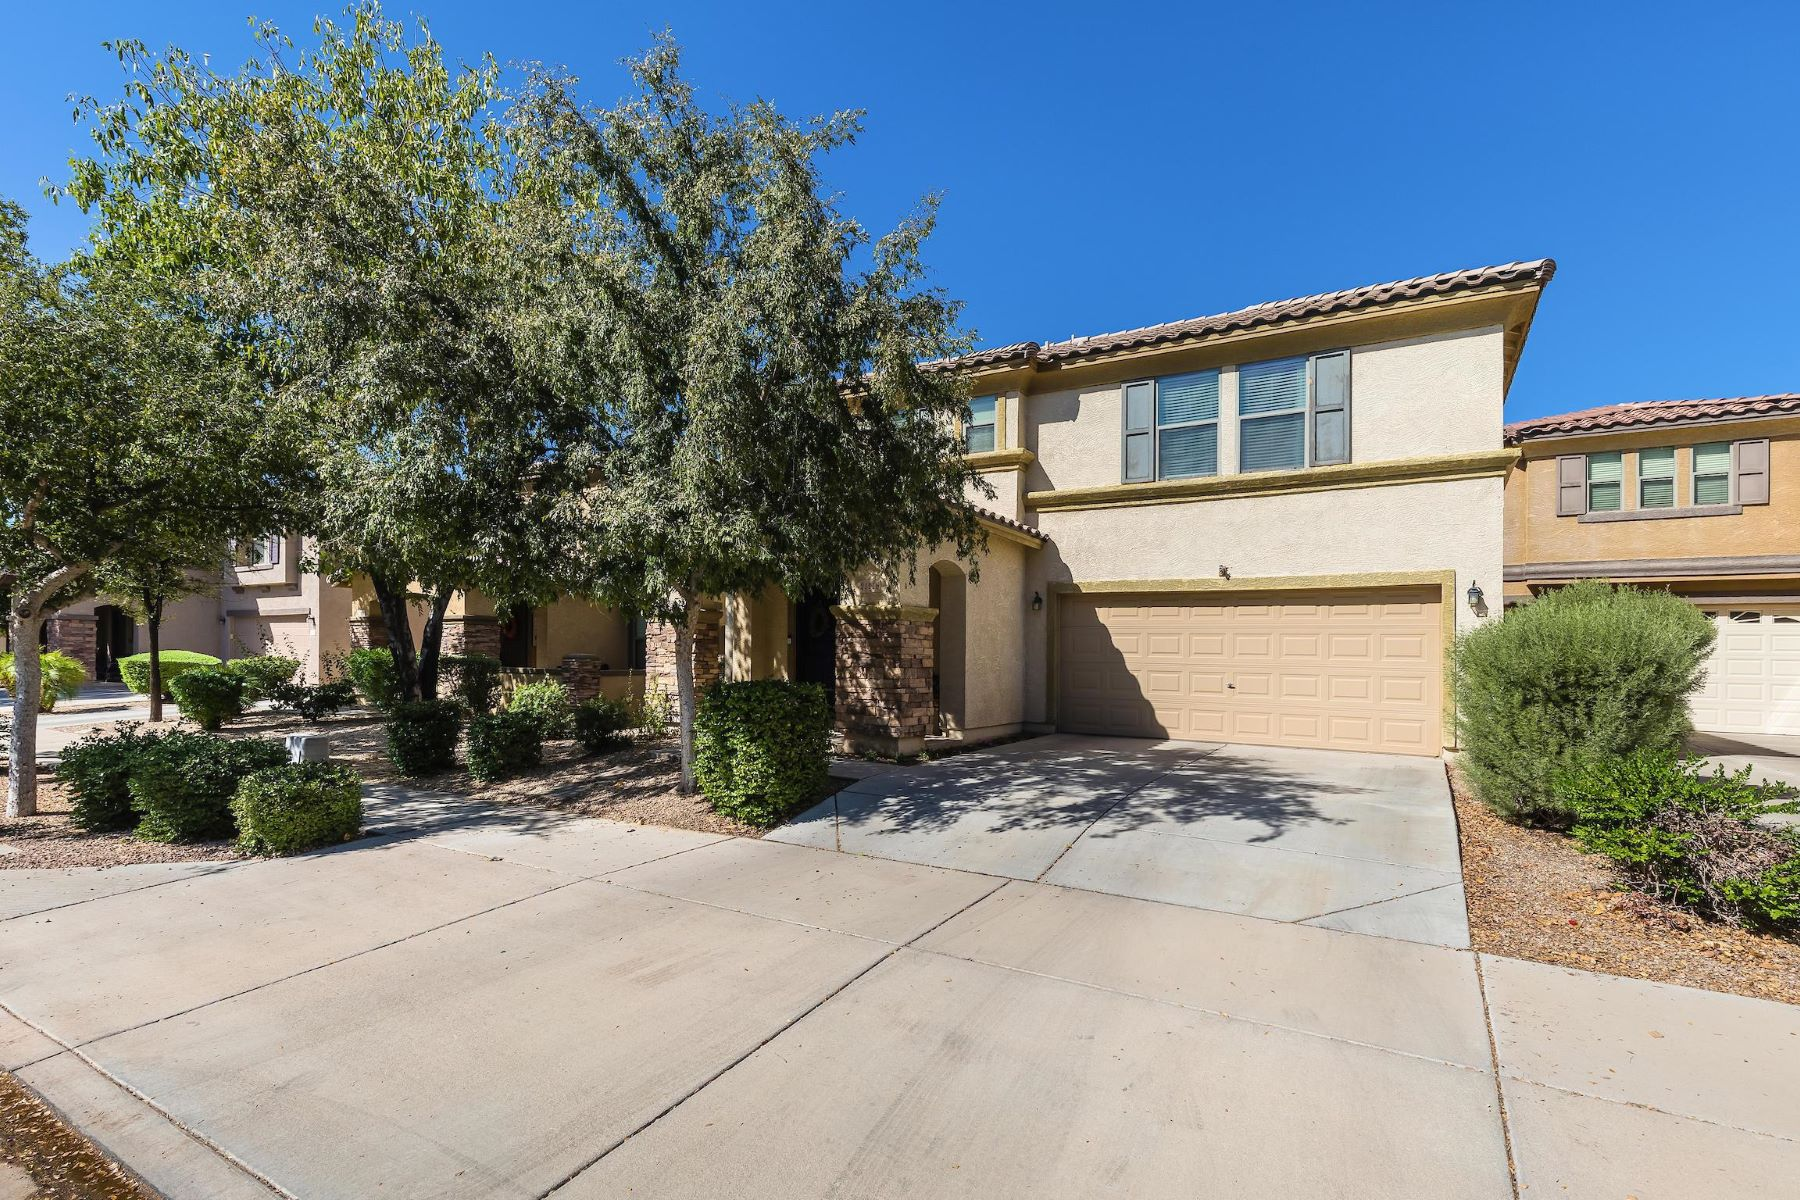 Single Family Homes for Sale at Del Rio Family Home 21116 East Munoz Street Queen Creek, Arizona 85142 United States